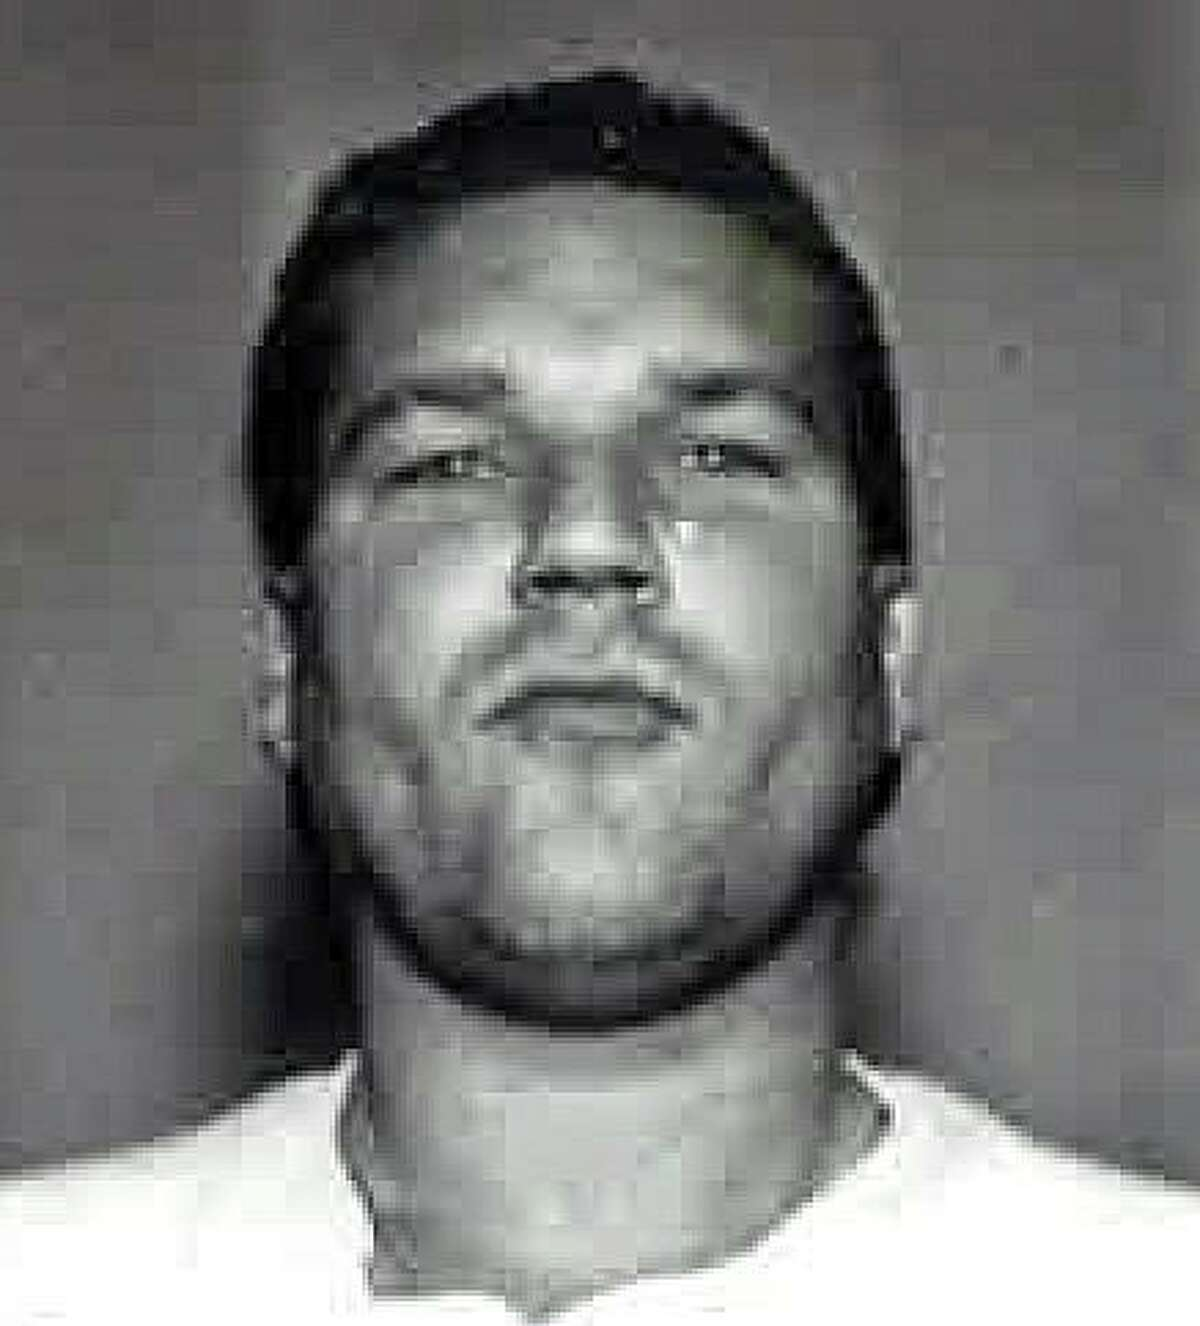 Gary Potak was fatally shot in Bridgeport, Conn., on May 6, 1992. His case remains unsolved.